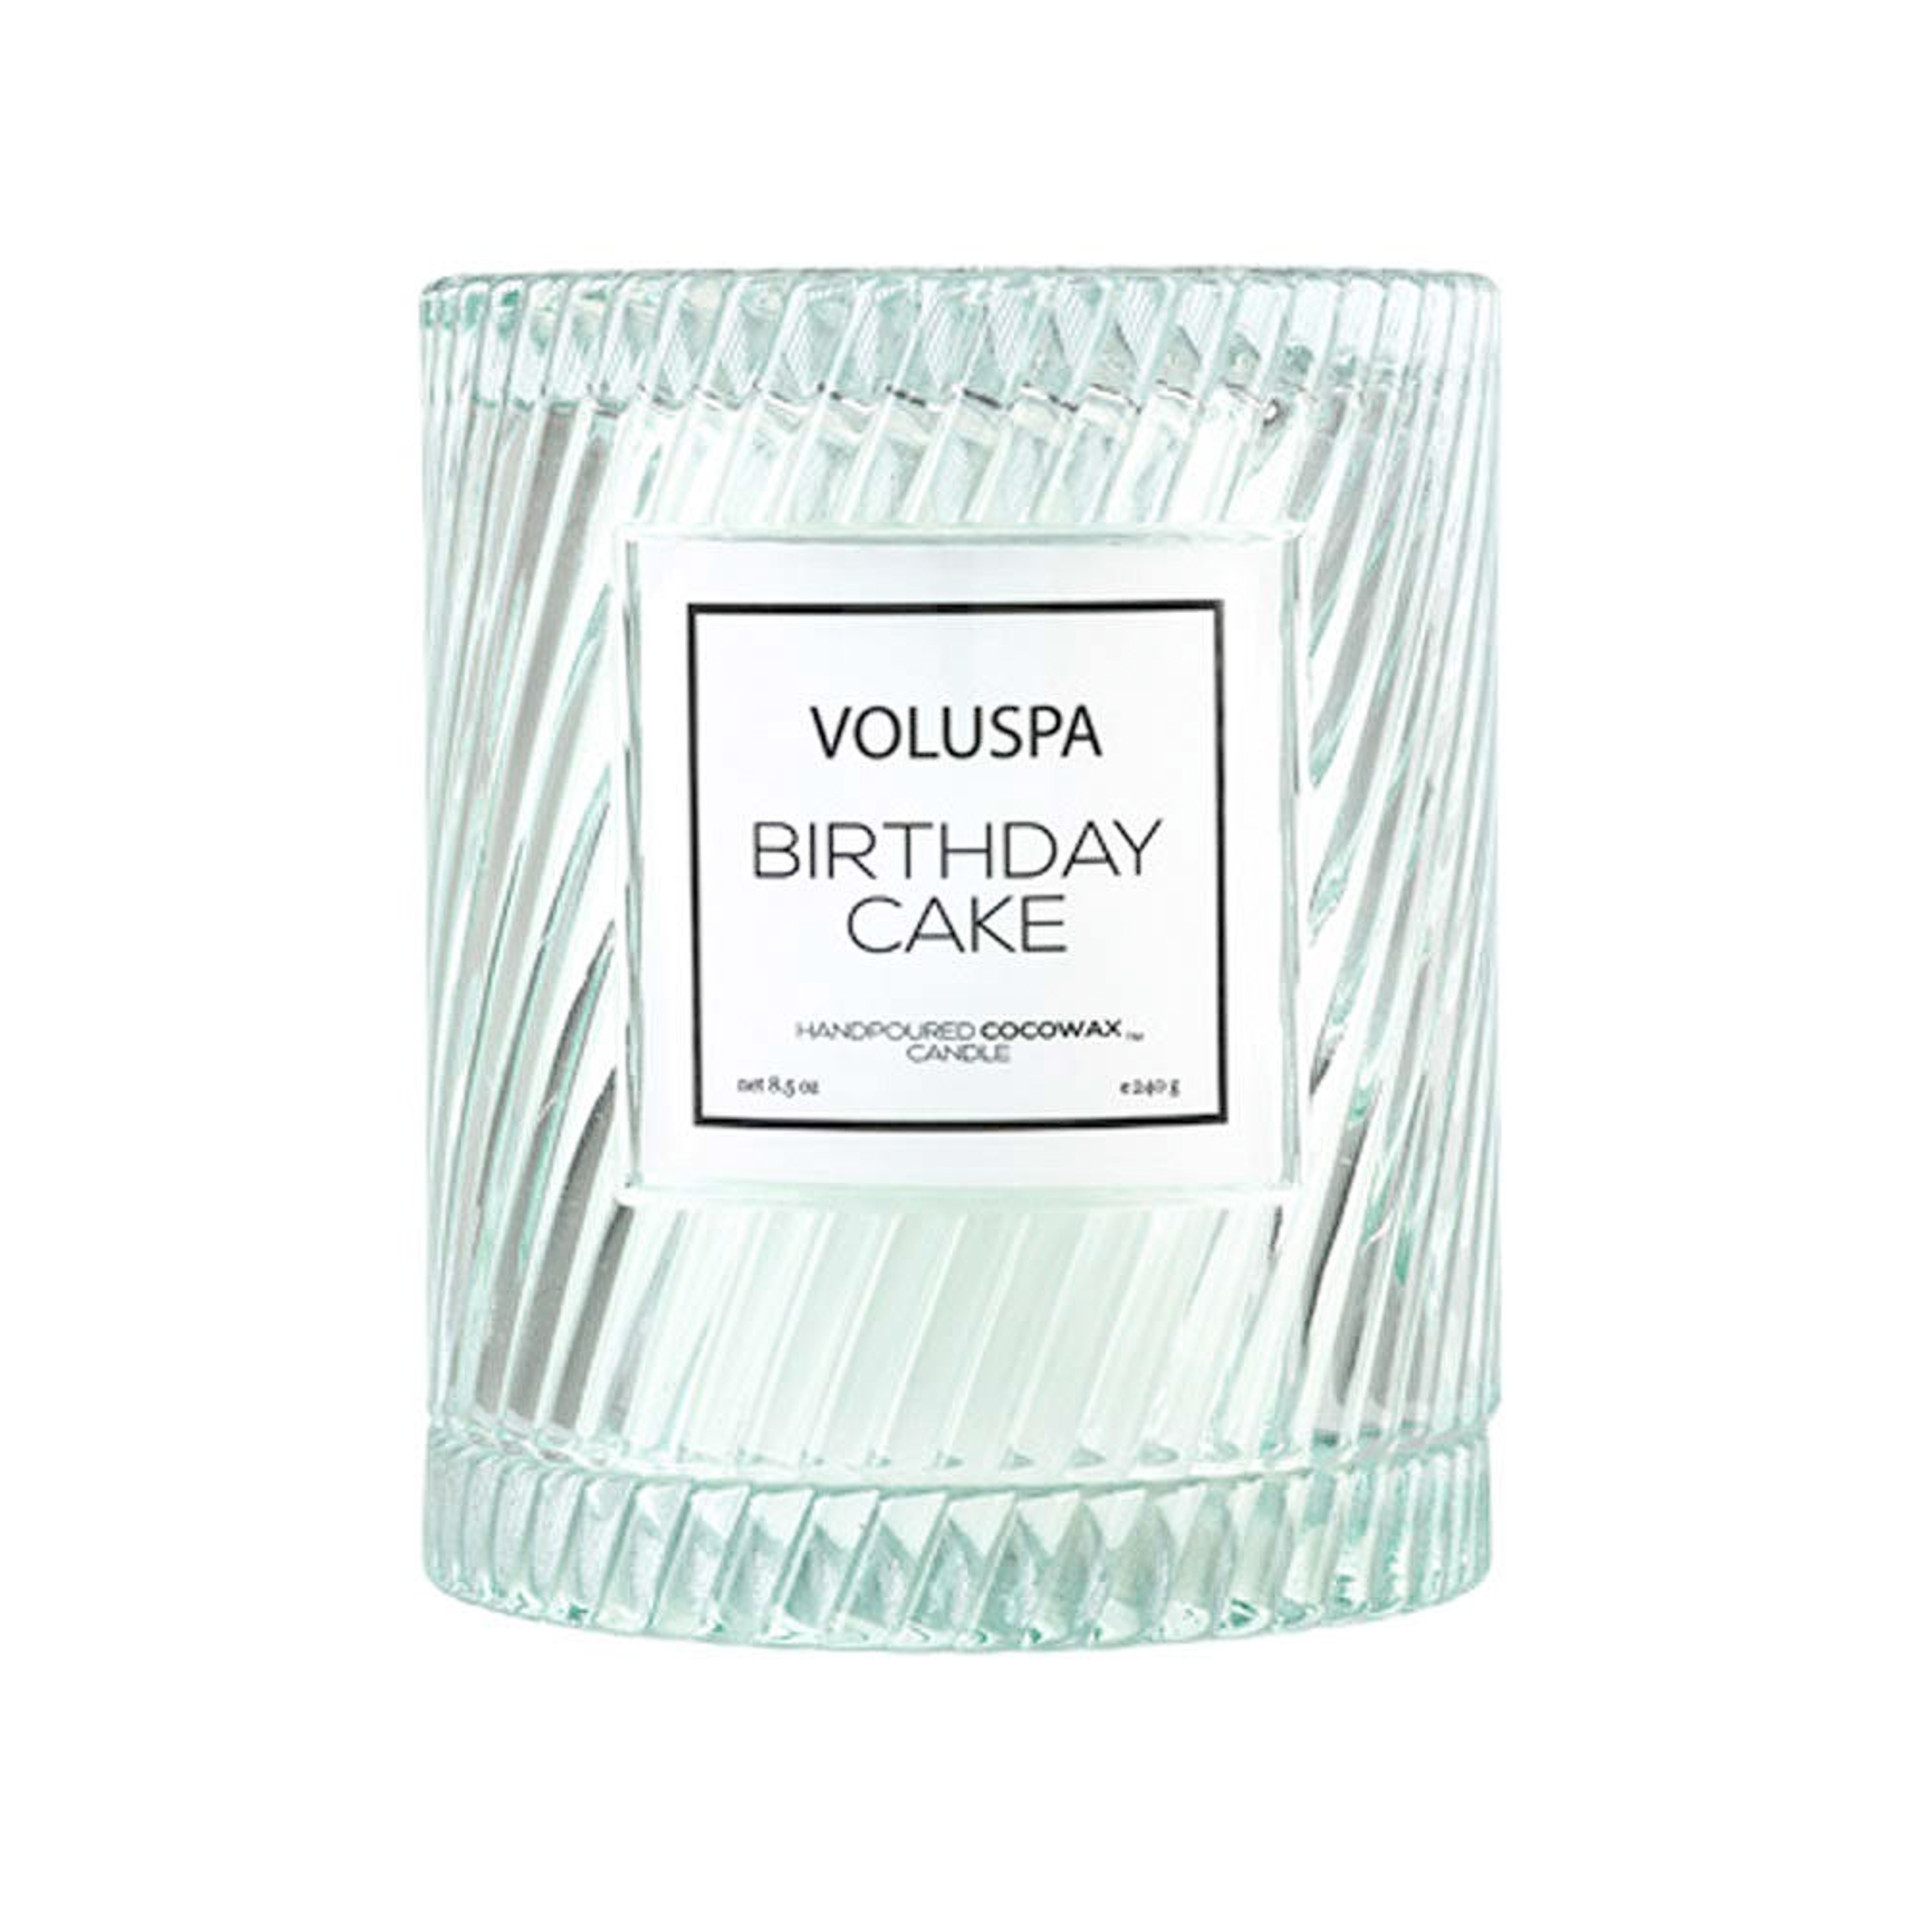 Voluspa Birthday Cake Candle with Cloche Cover